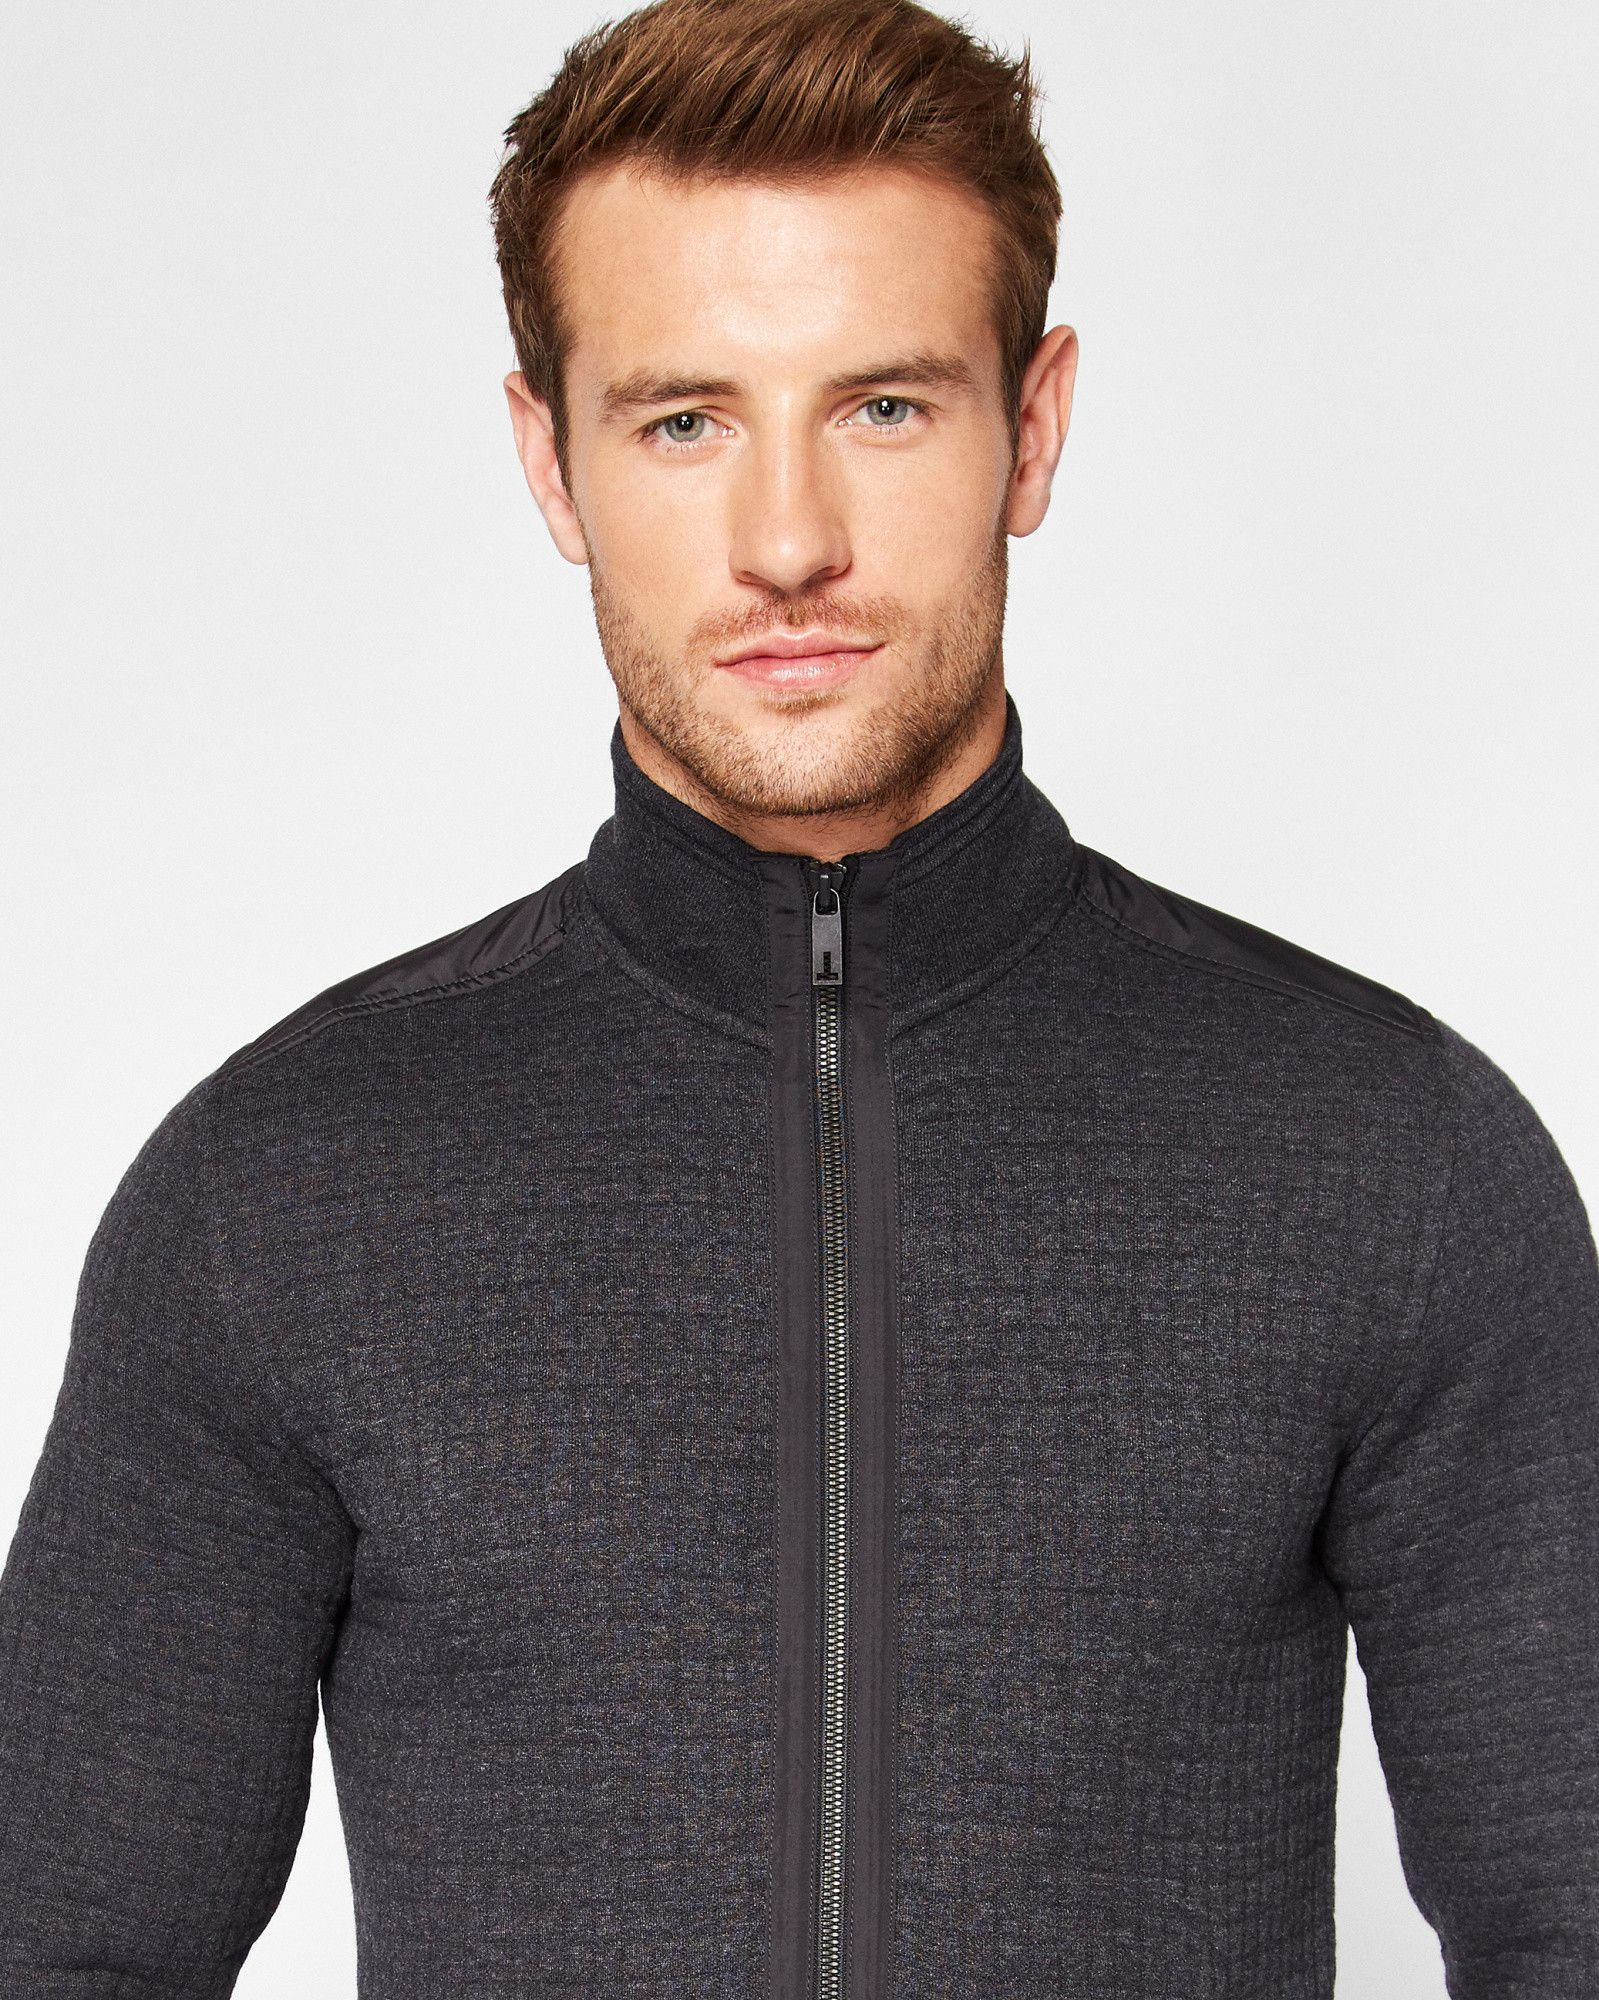 Quilted Bomber Jacket Charcoal Clothing Ted Baker Designer Clothes For Men Quilted Bomber Jacket Bomber Jacket [ 2000 x 1599 Pixel ]